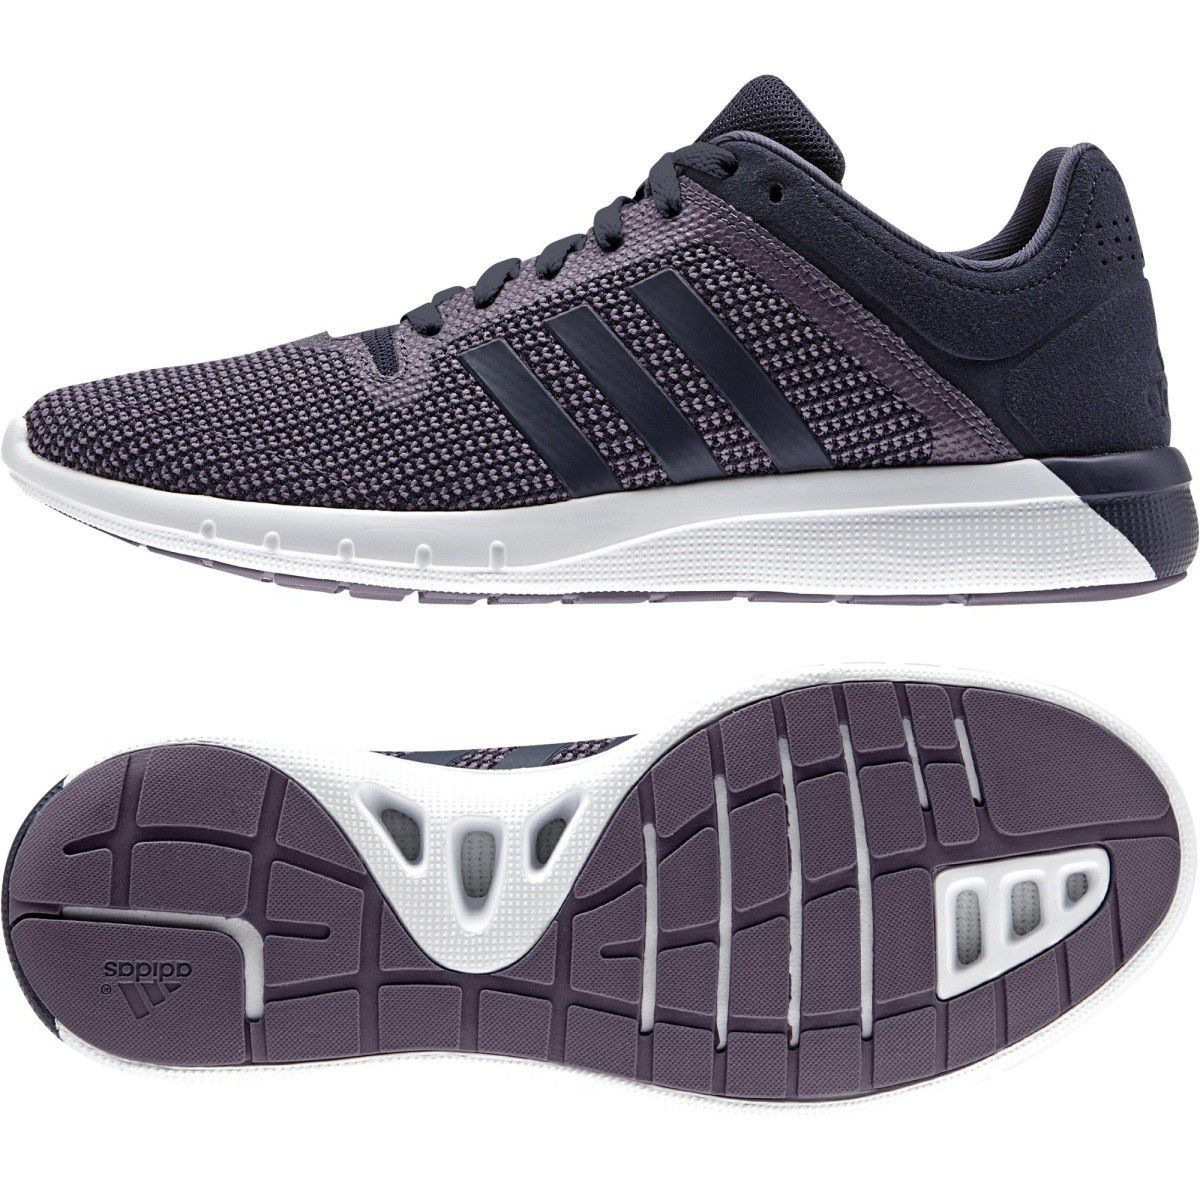 best authentic a83c8 aacf4 spain adidas climacool boat lace outdoors shoes ad518 16843 new style  womens adidas climacool fresh 2 running shoe. loading zoom 91b4e 62ea5